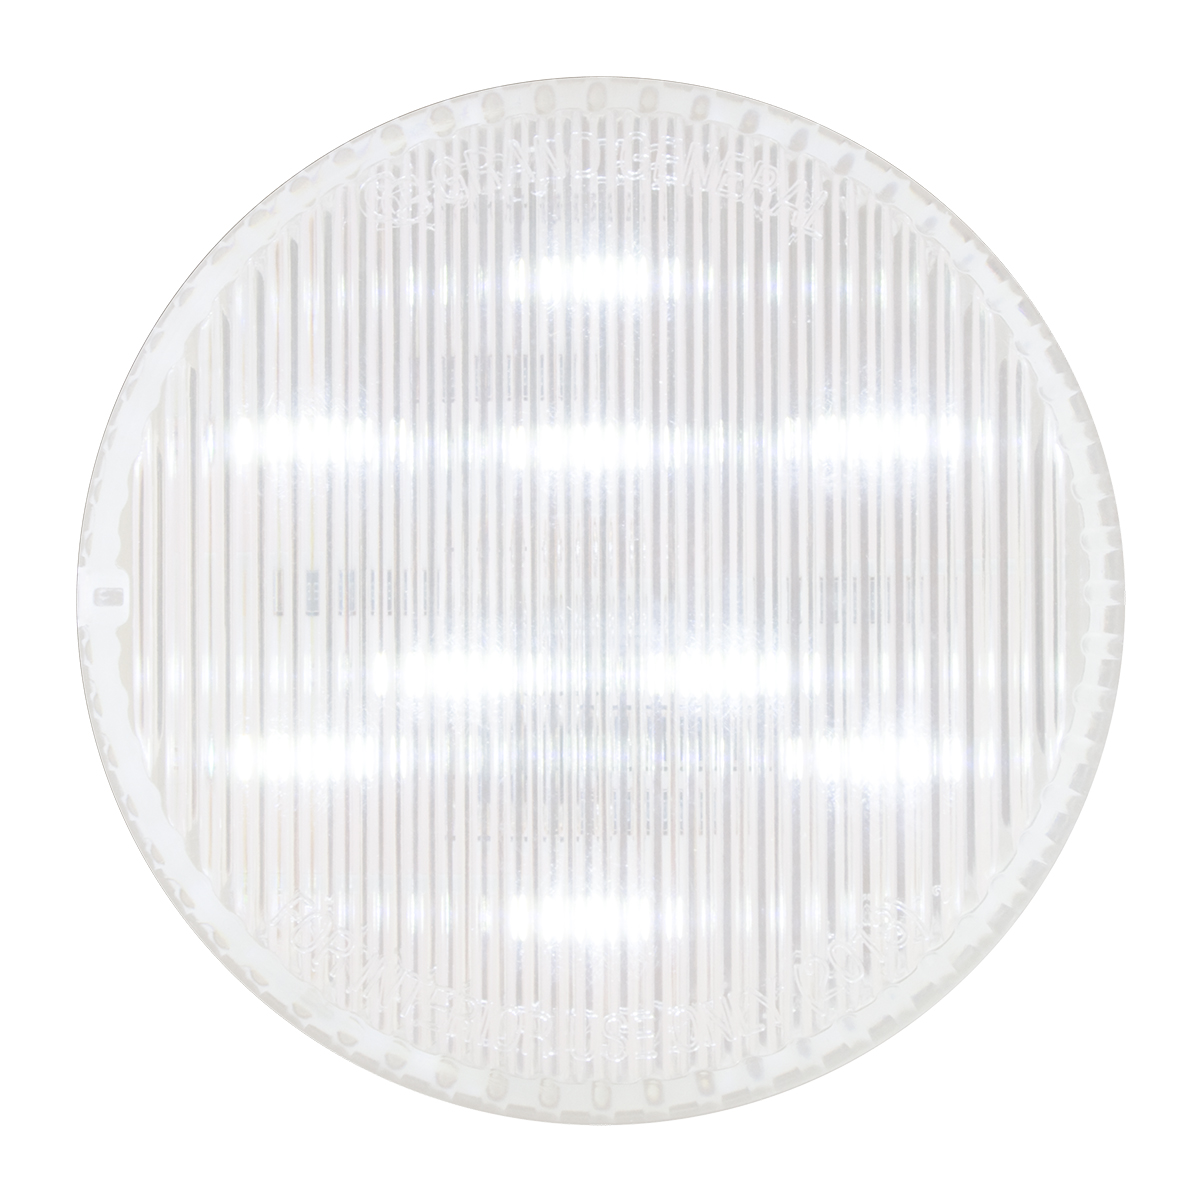 "75994 2-1/2"" Round Dual Function Light"